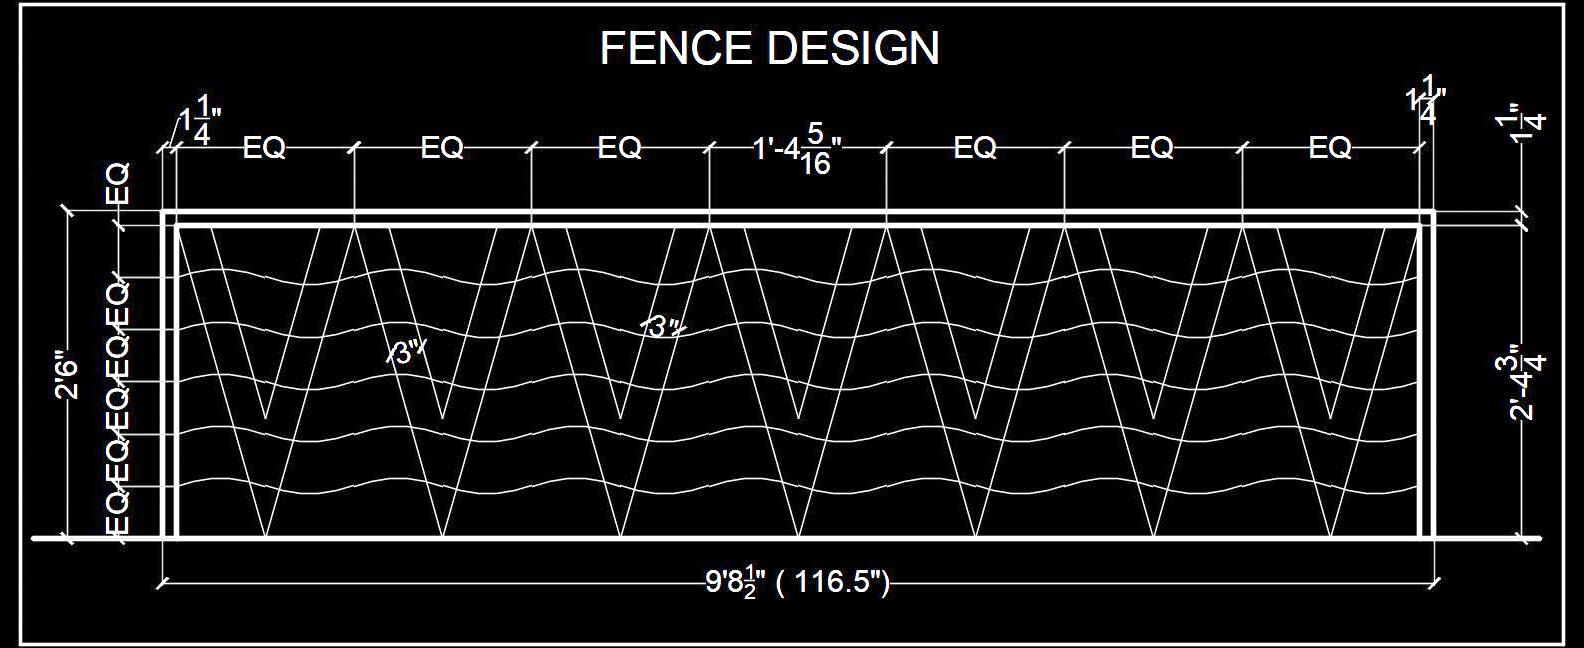 Wrought Iron Fence Cad Block Free Download Autocad Dwg Plan N Design